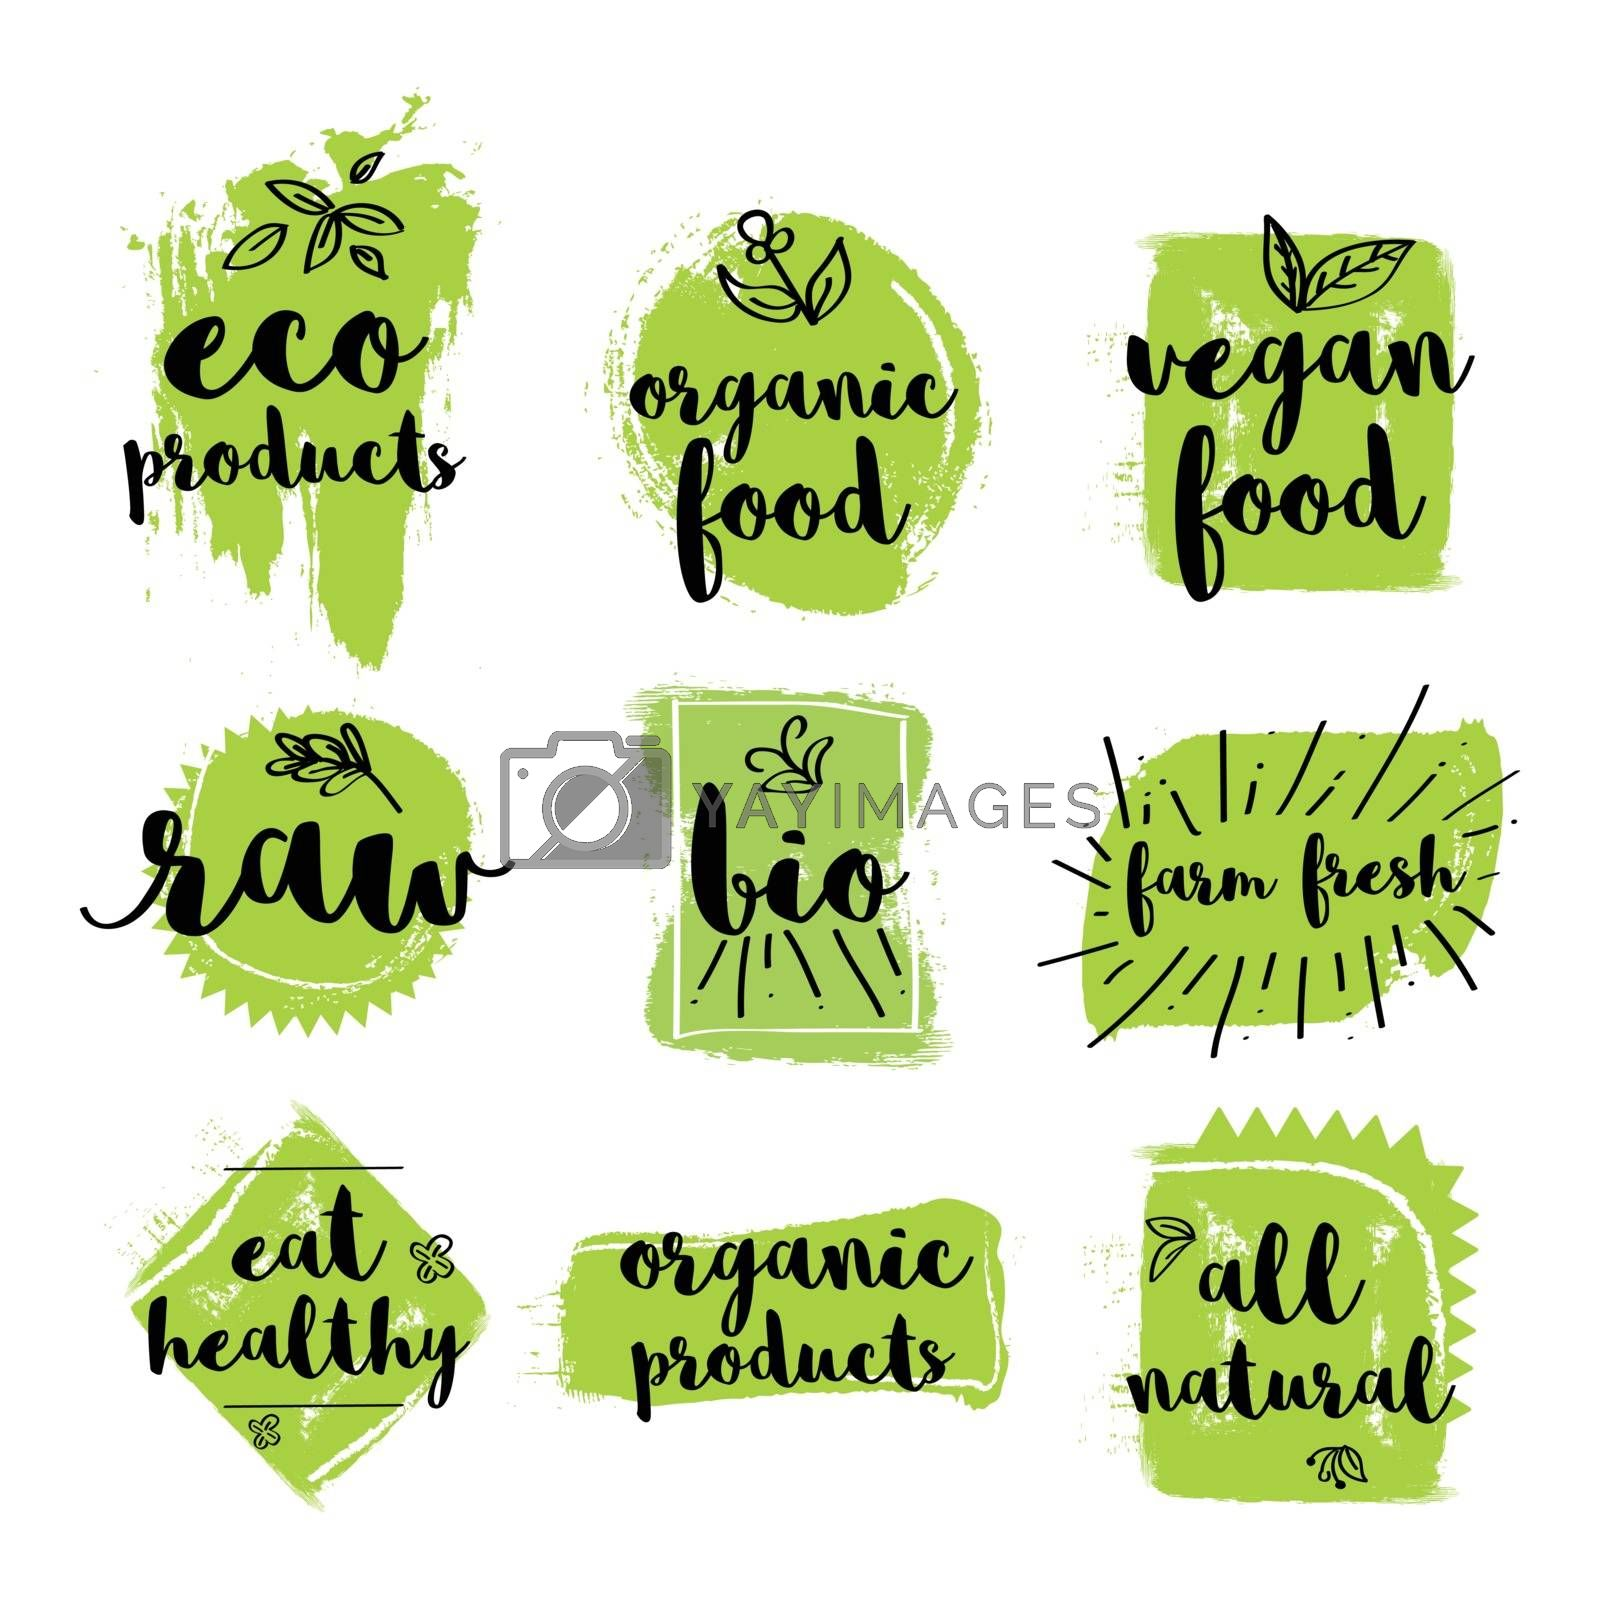 Set of Eco, Organic, Vegan, Raw, Bio, Farm Fresh and Natural Products or Foods Labels, Creative hand drawn lettering design for Healthy Food concept, Green Stickers, Badges and Tags collection.